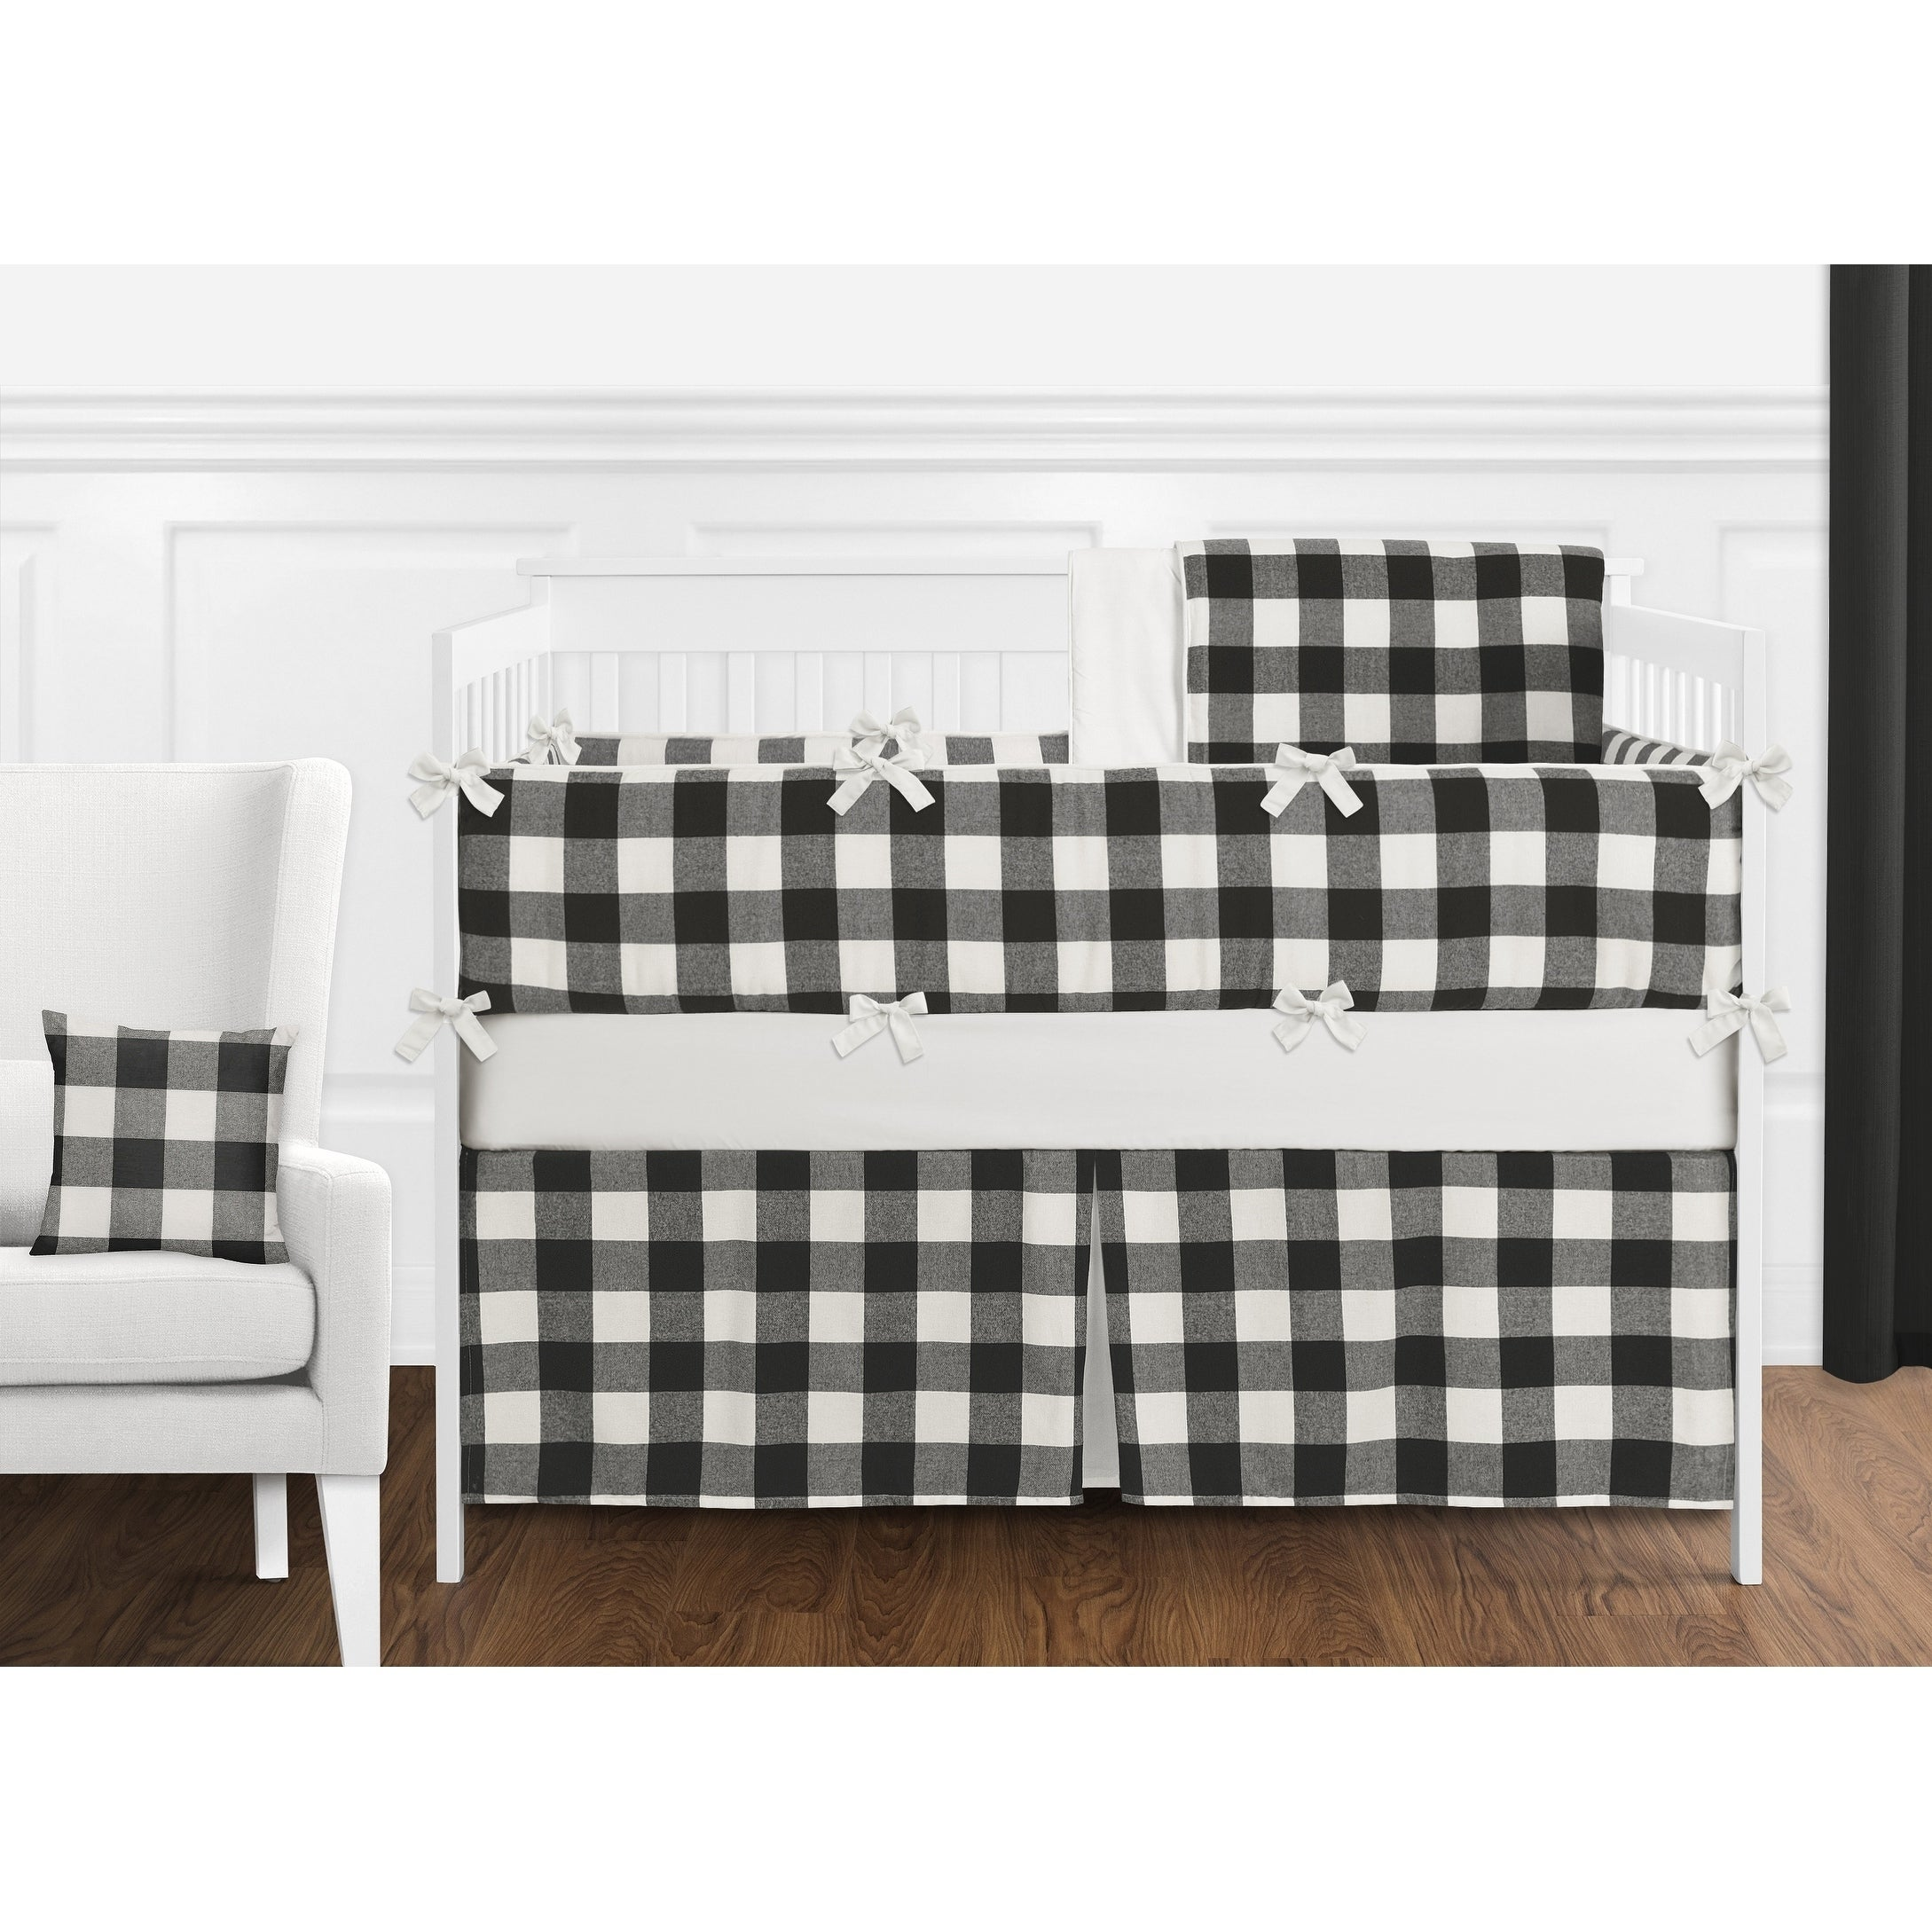 Black White Rustic Woodland Flannel